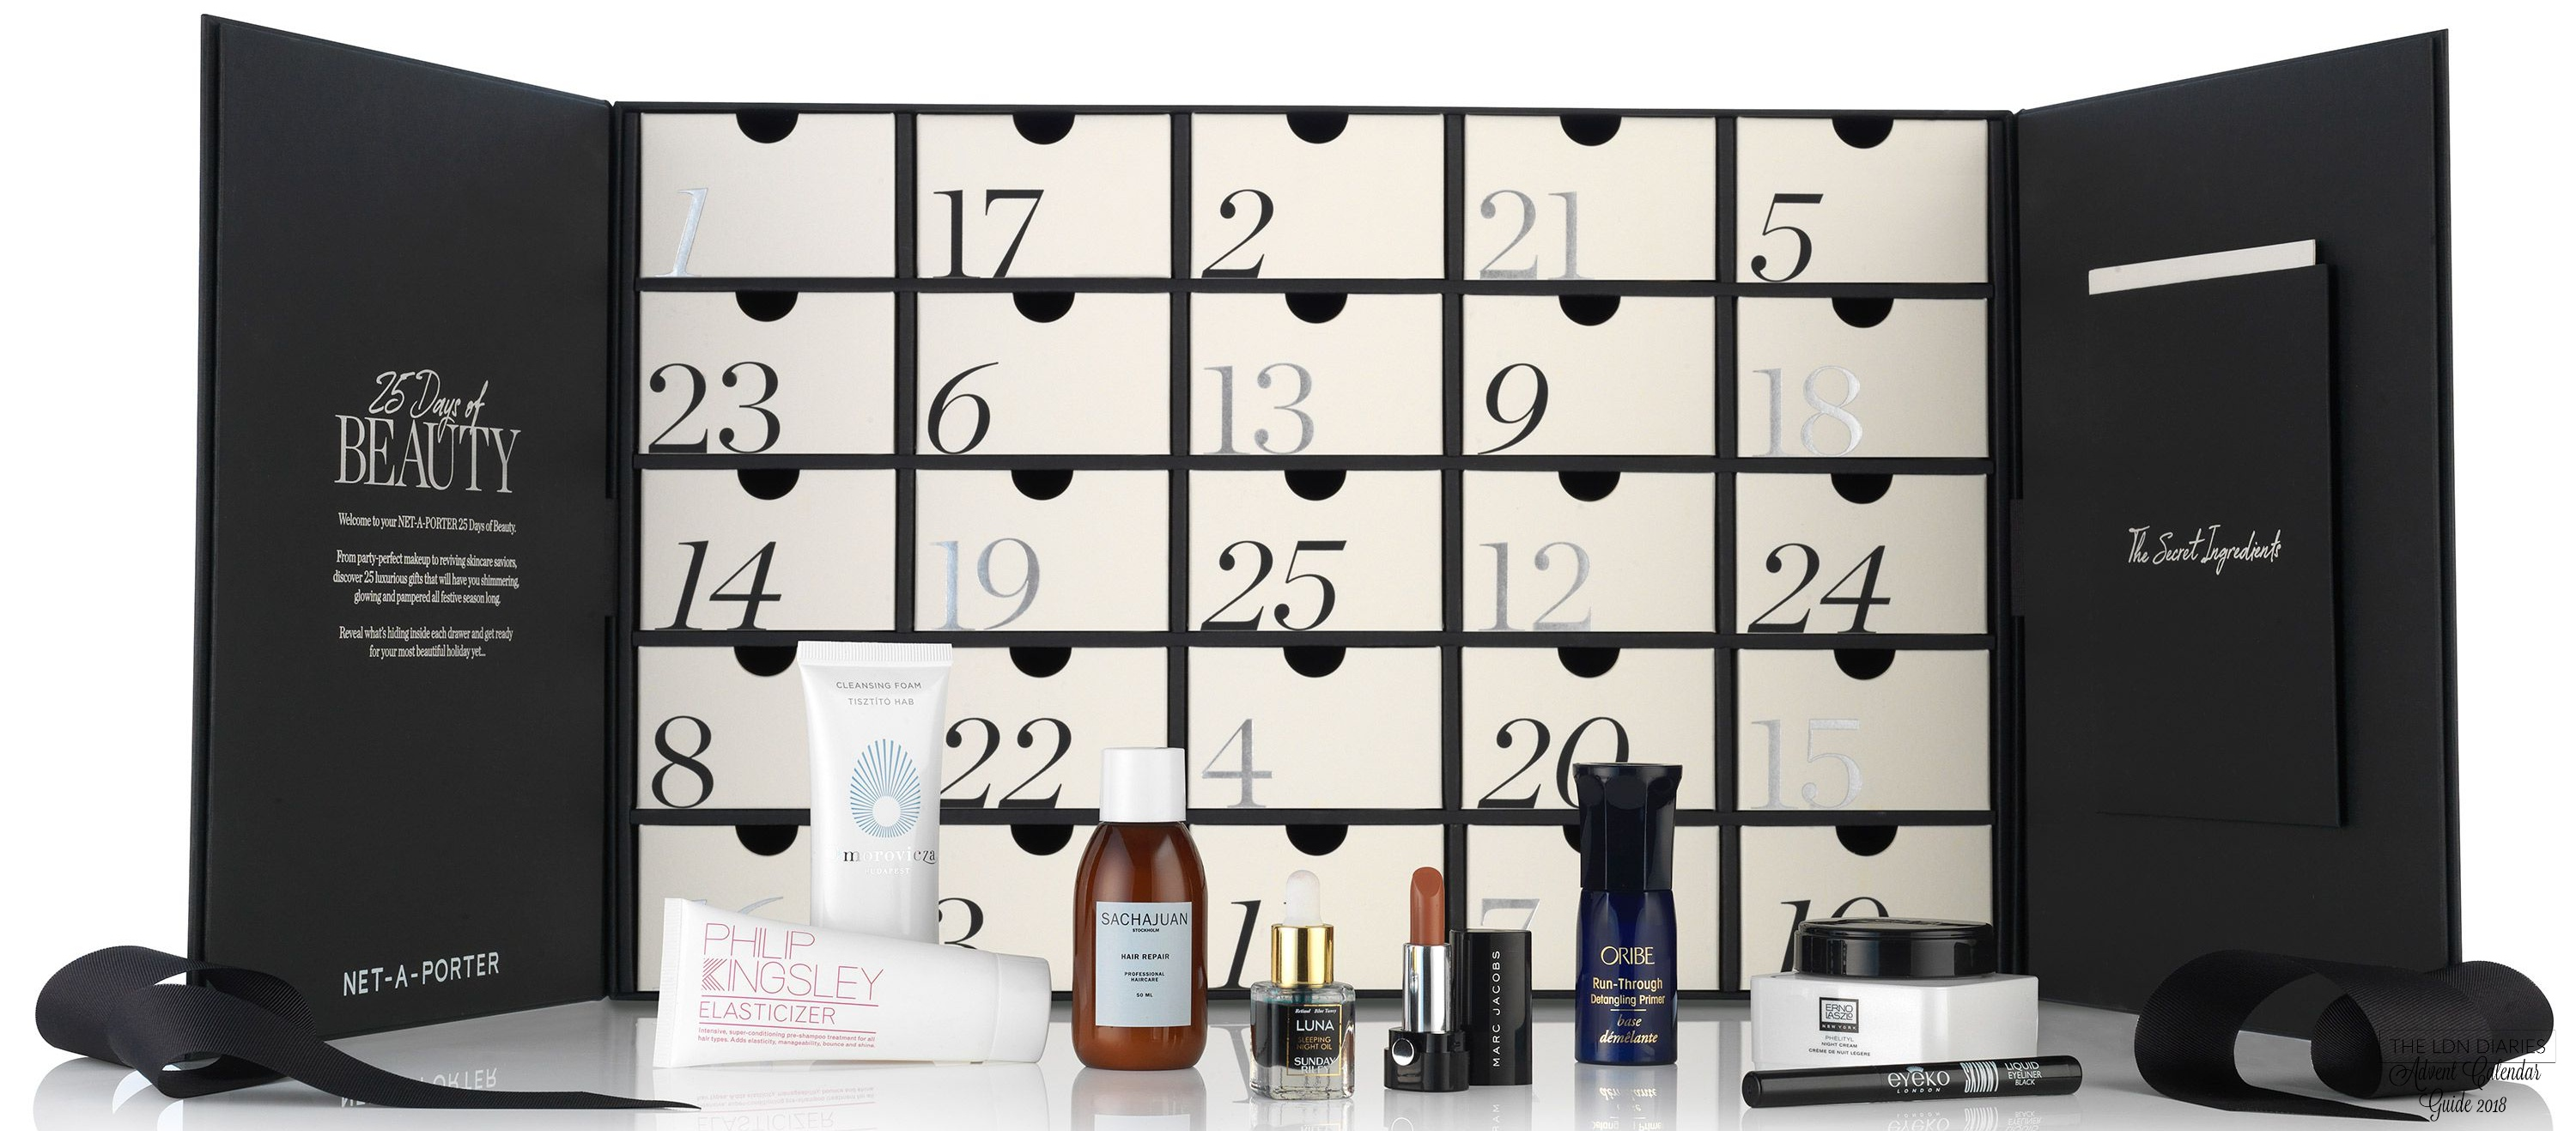 Net A Porter Beauty Advent Calendar 2018 - The LDN Diaries